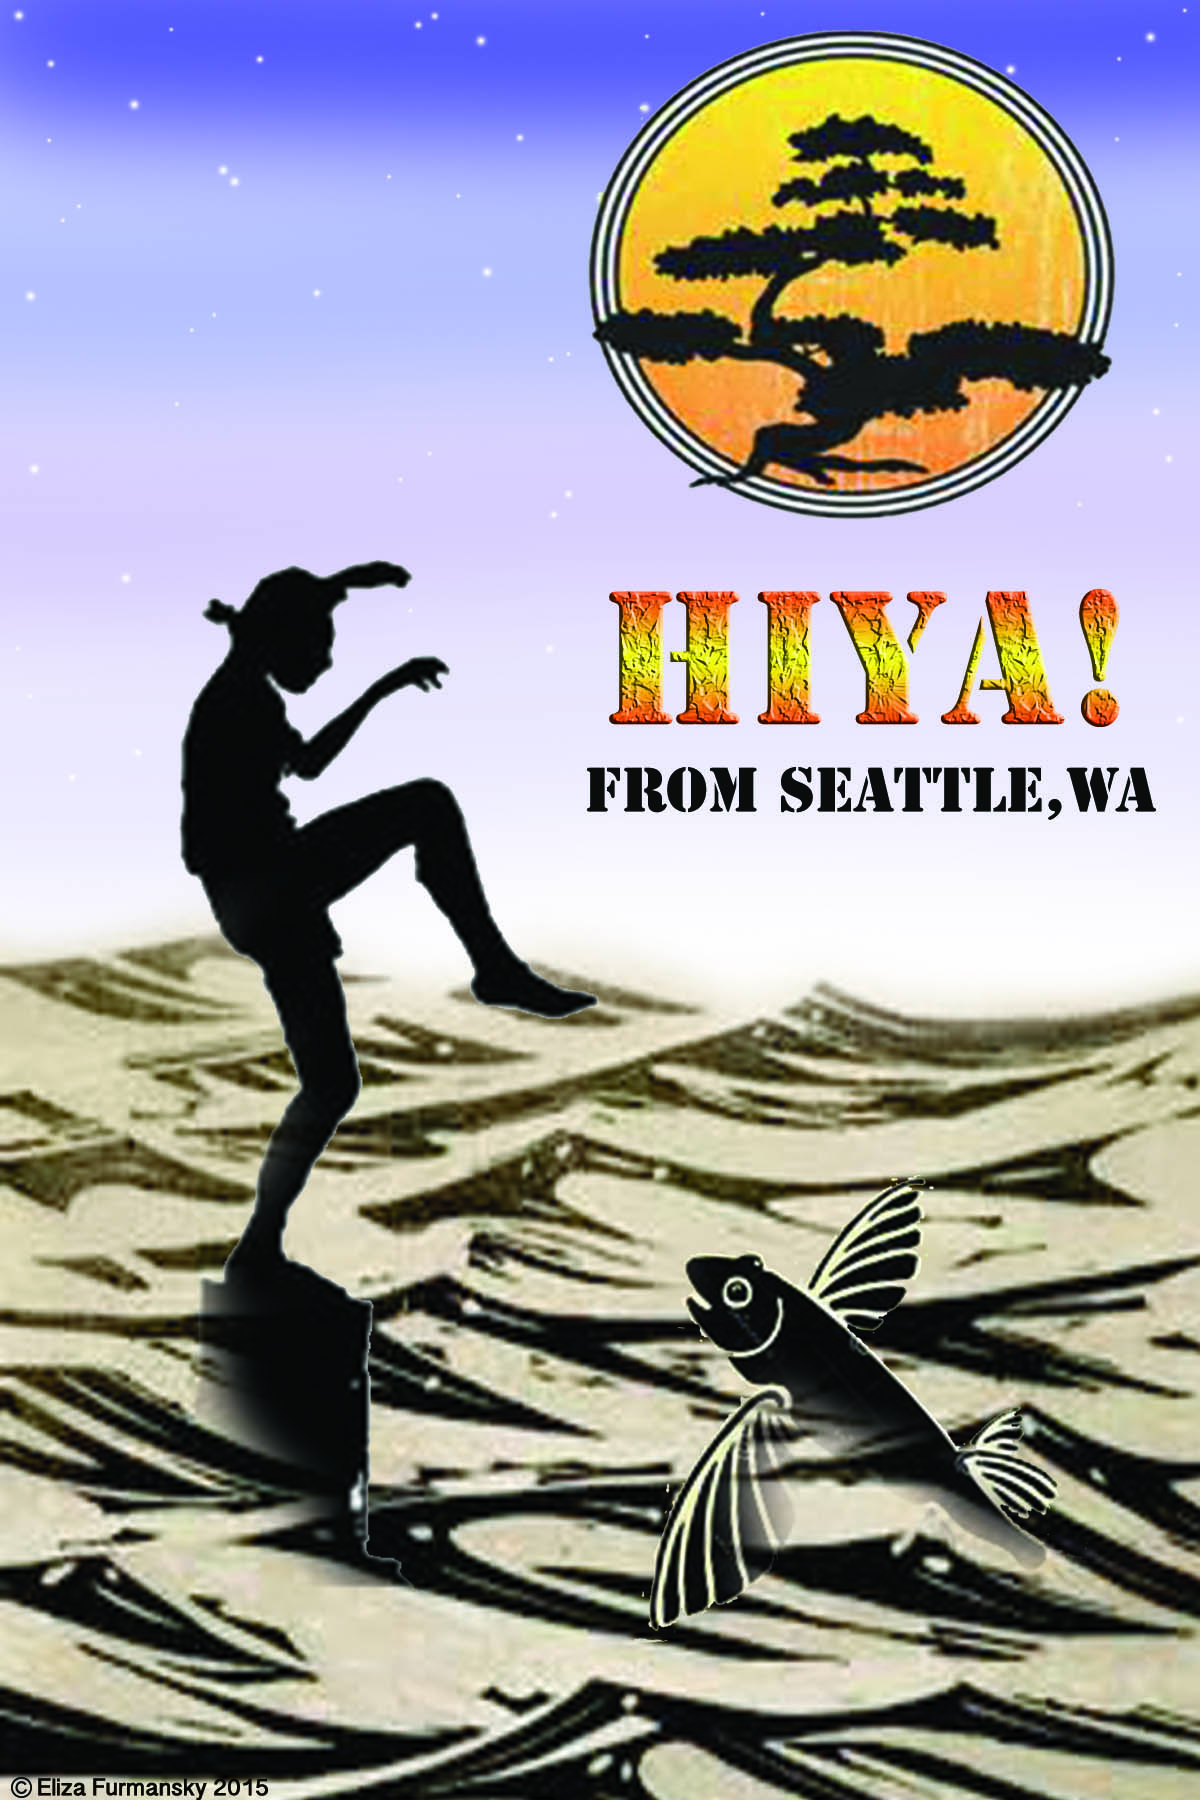 Seattle Postcard as an ode to the Karate Kid